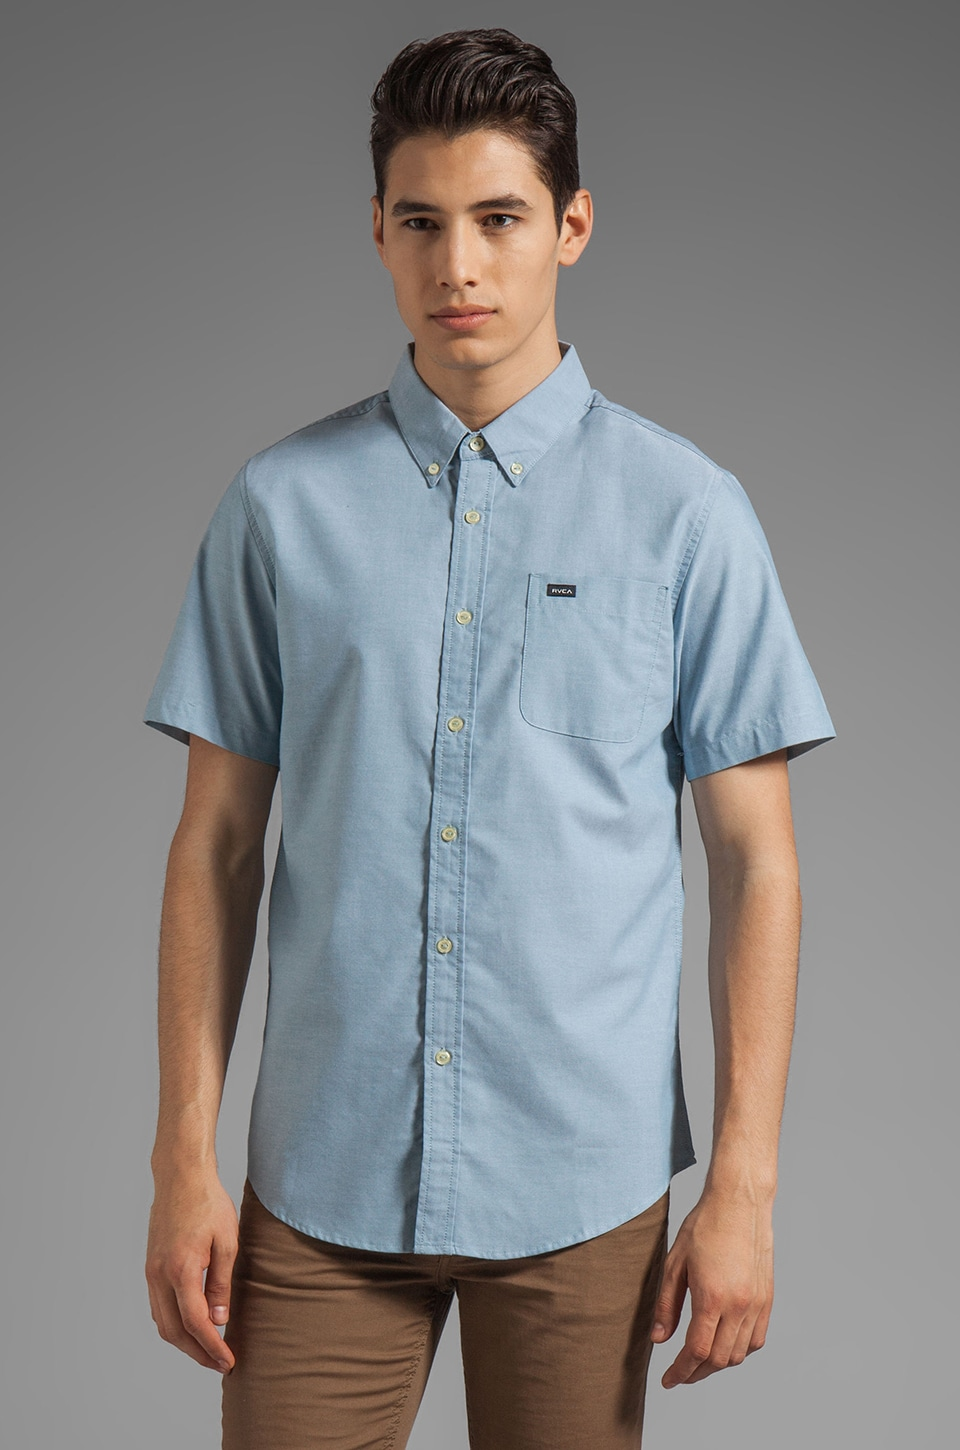 RVCA That'll Do Oxford Short Sleeve in Aegean Blue